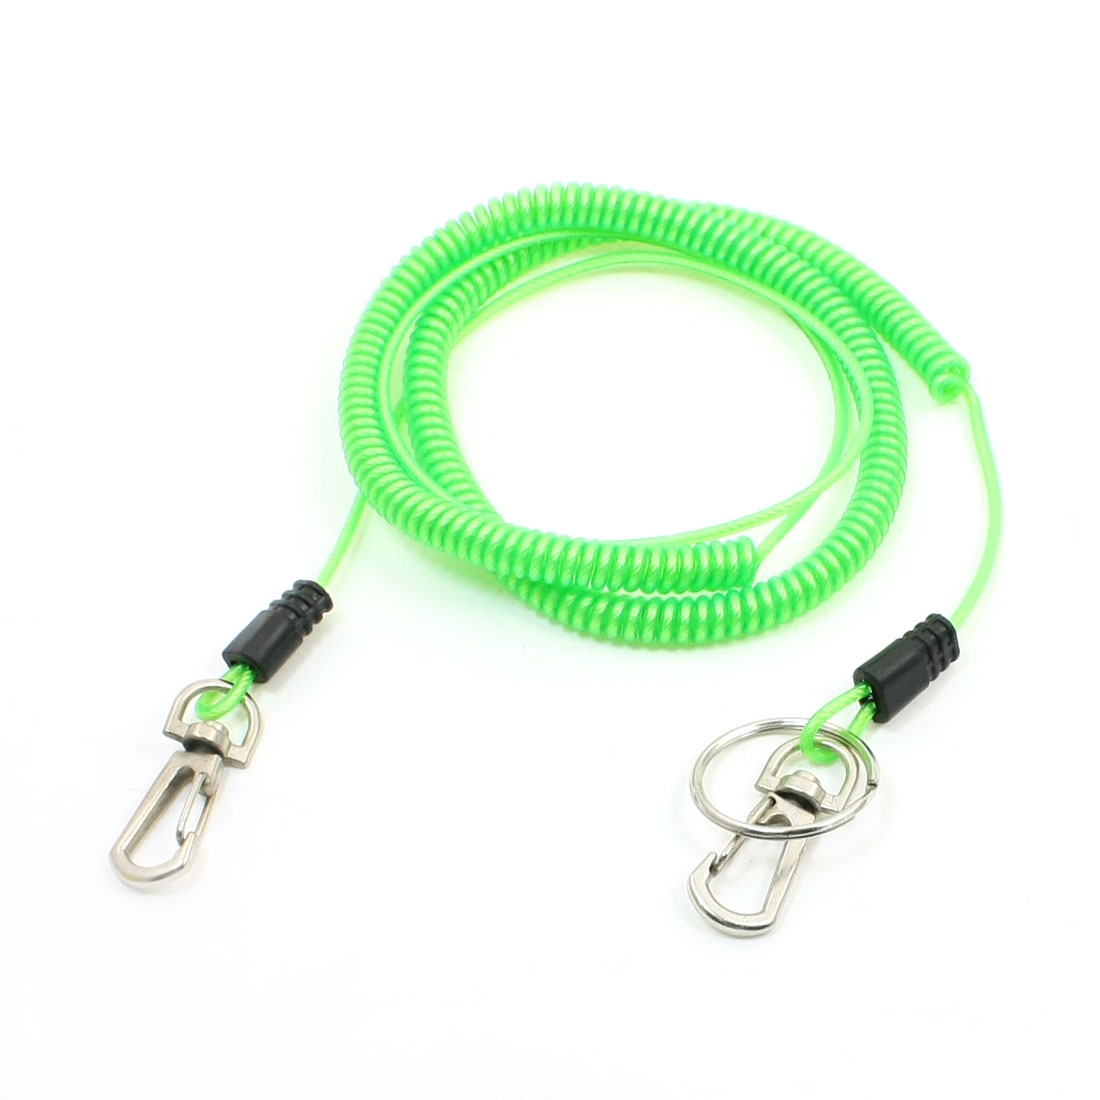 16.4Ft 5M Retractable Elastic Plastic Coil Fishing Lanyard Rope Green